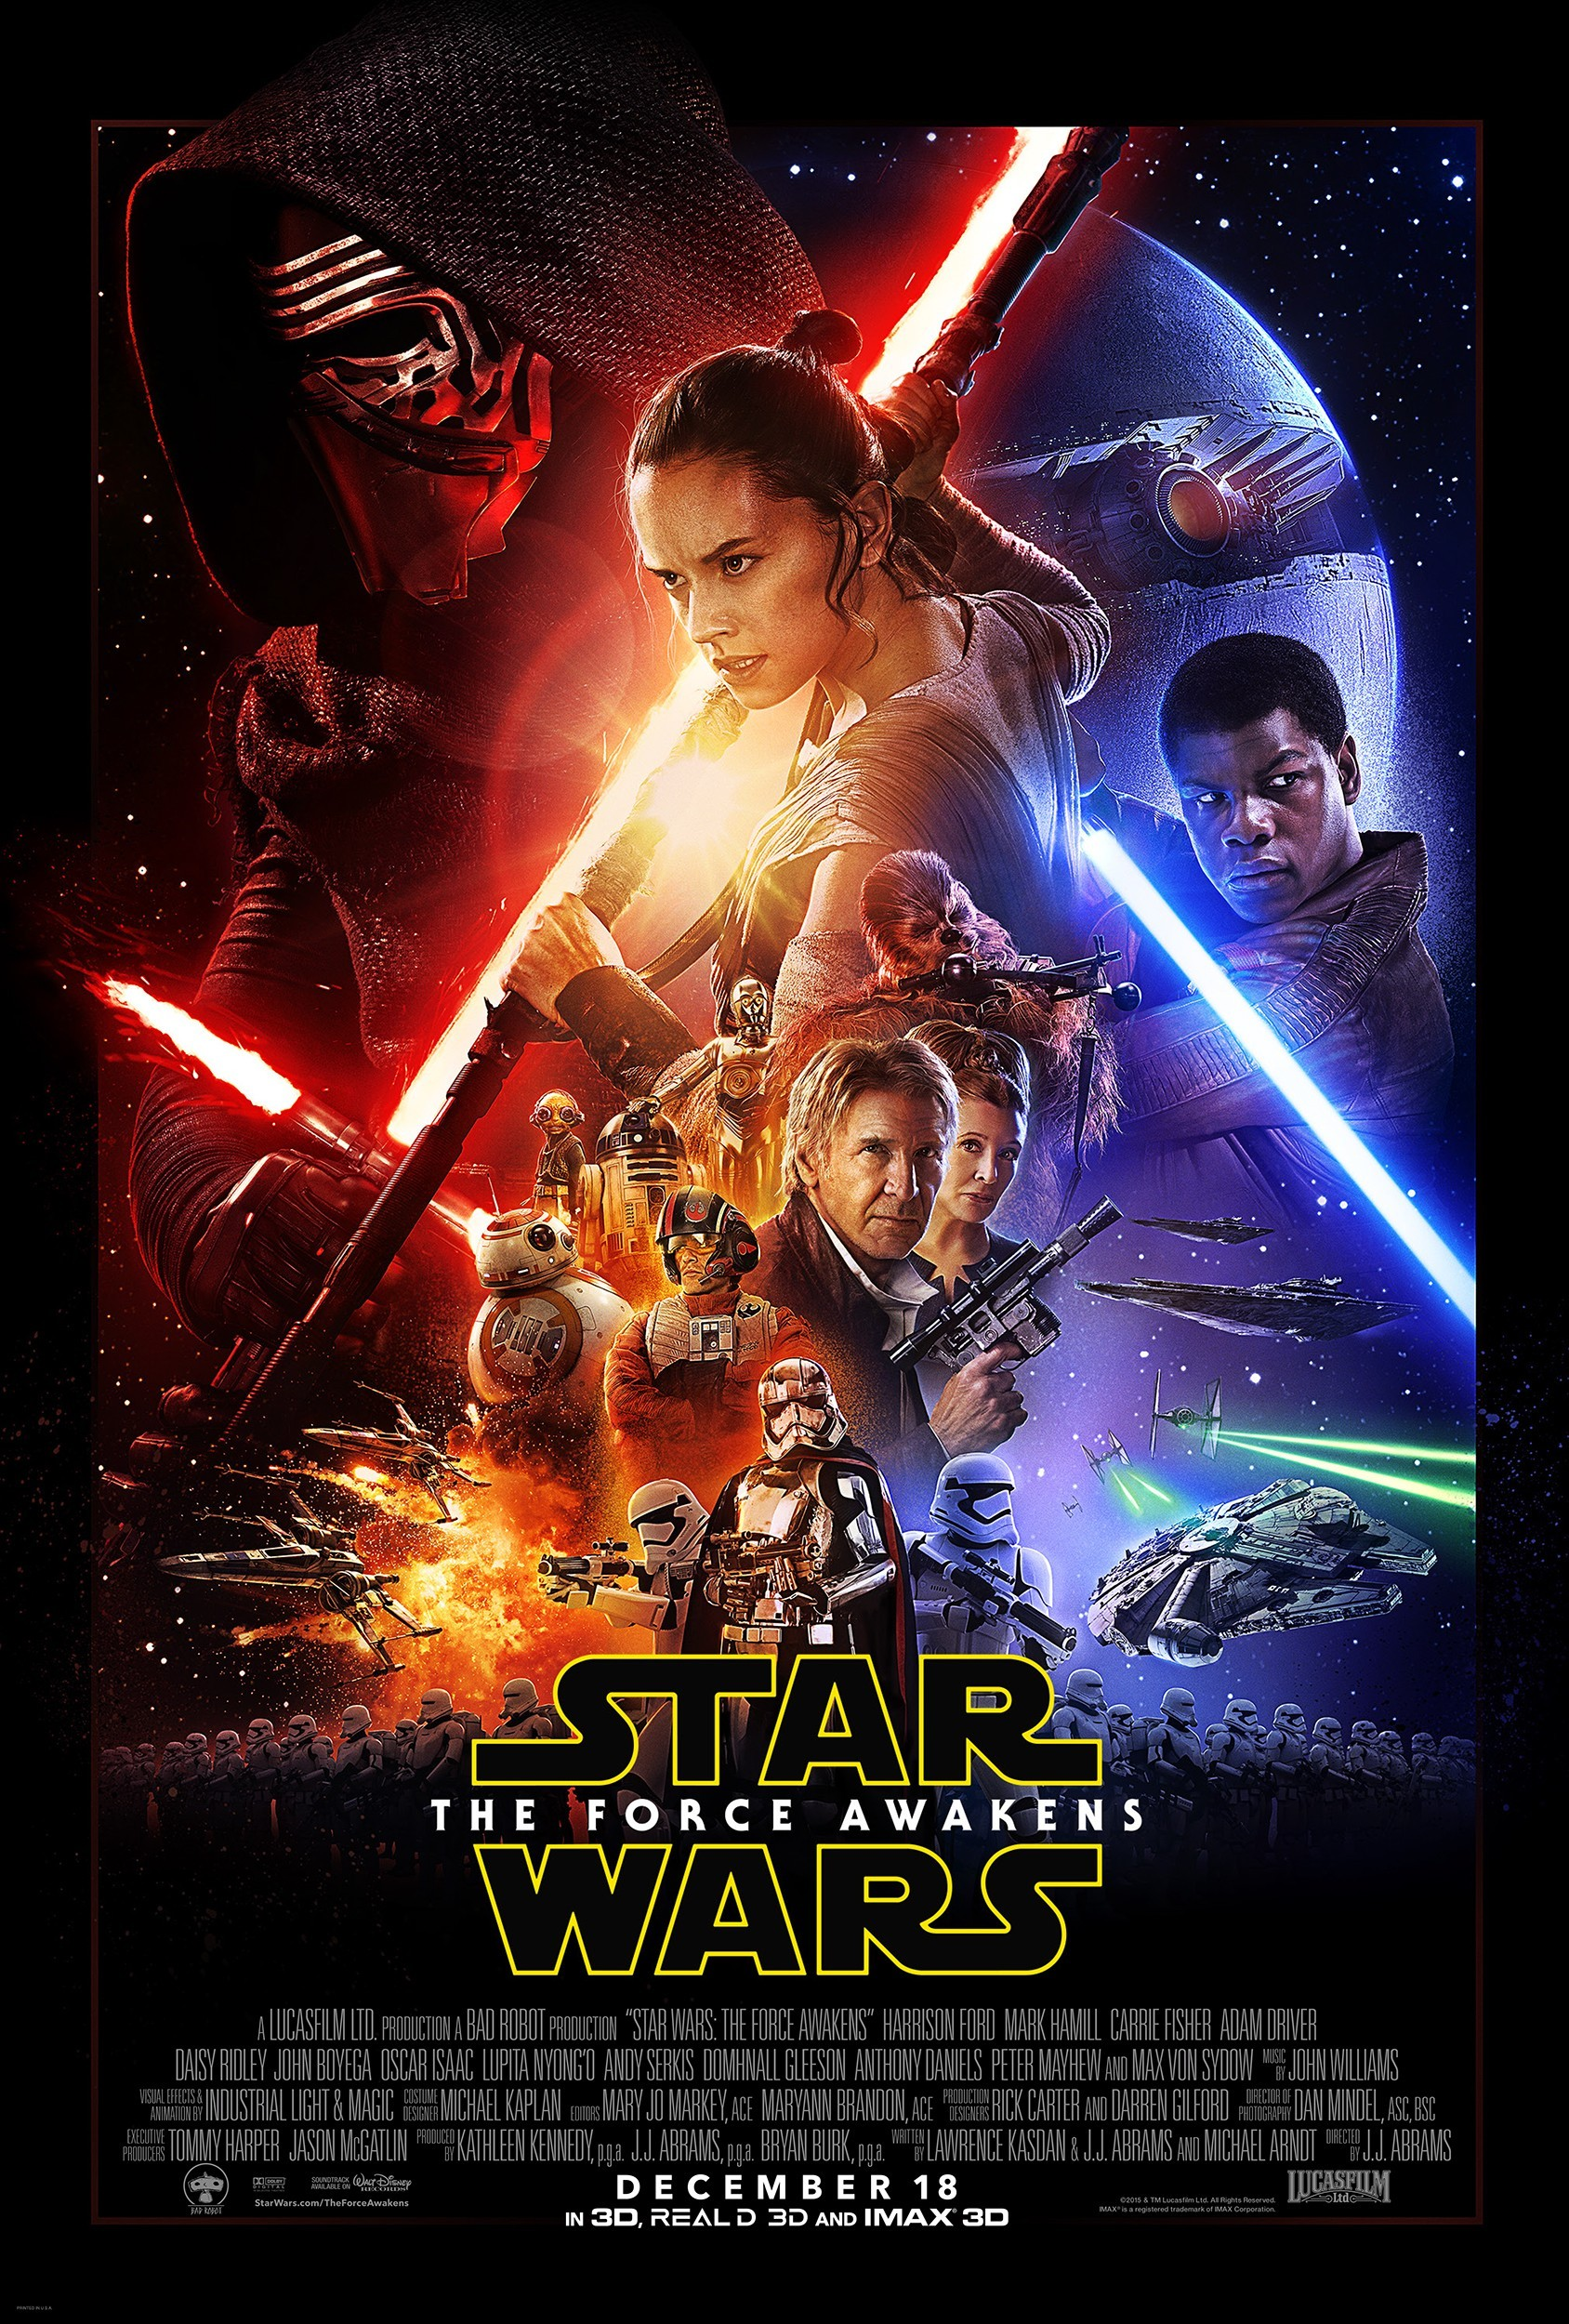 Star Wars: The Force Awakens 星球大战:原力觉醒